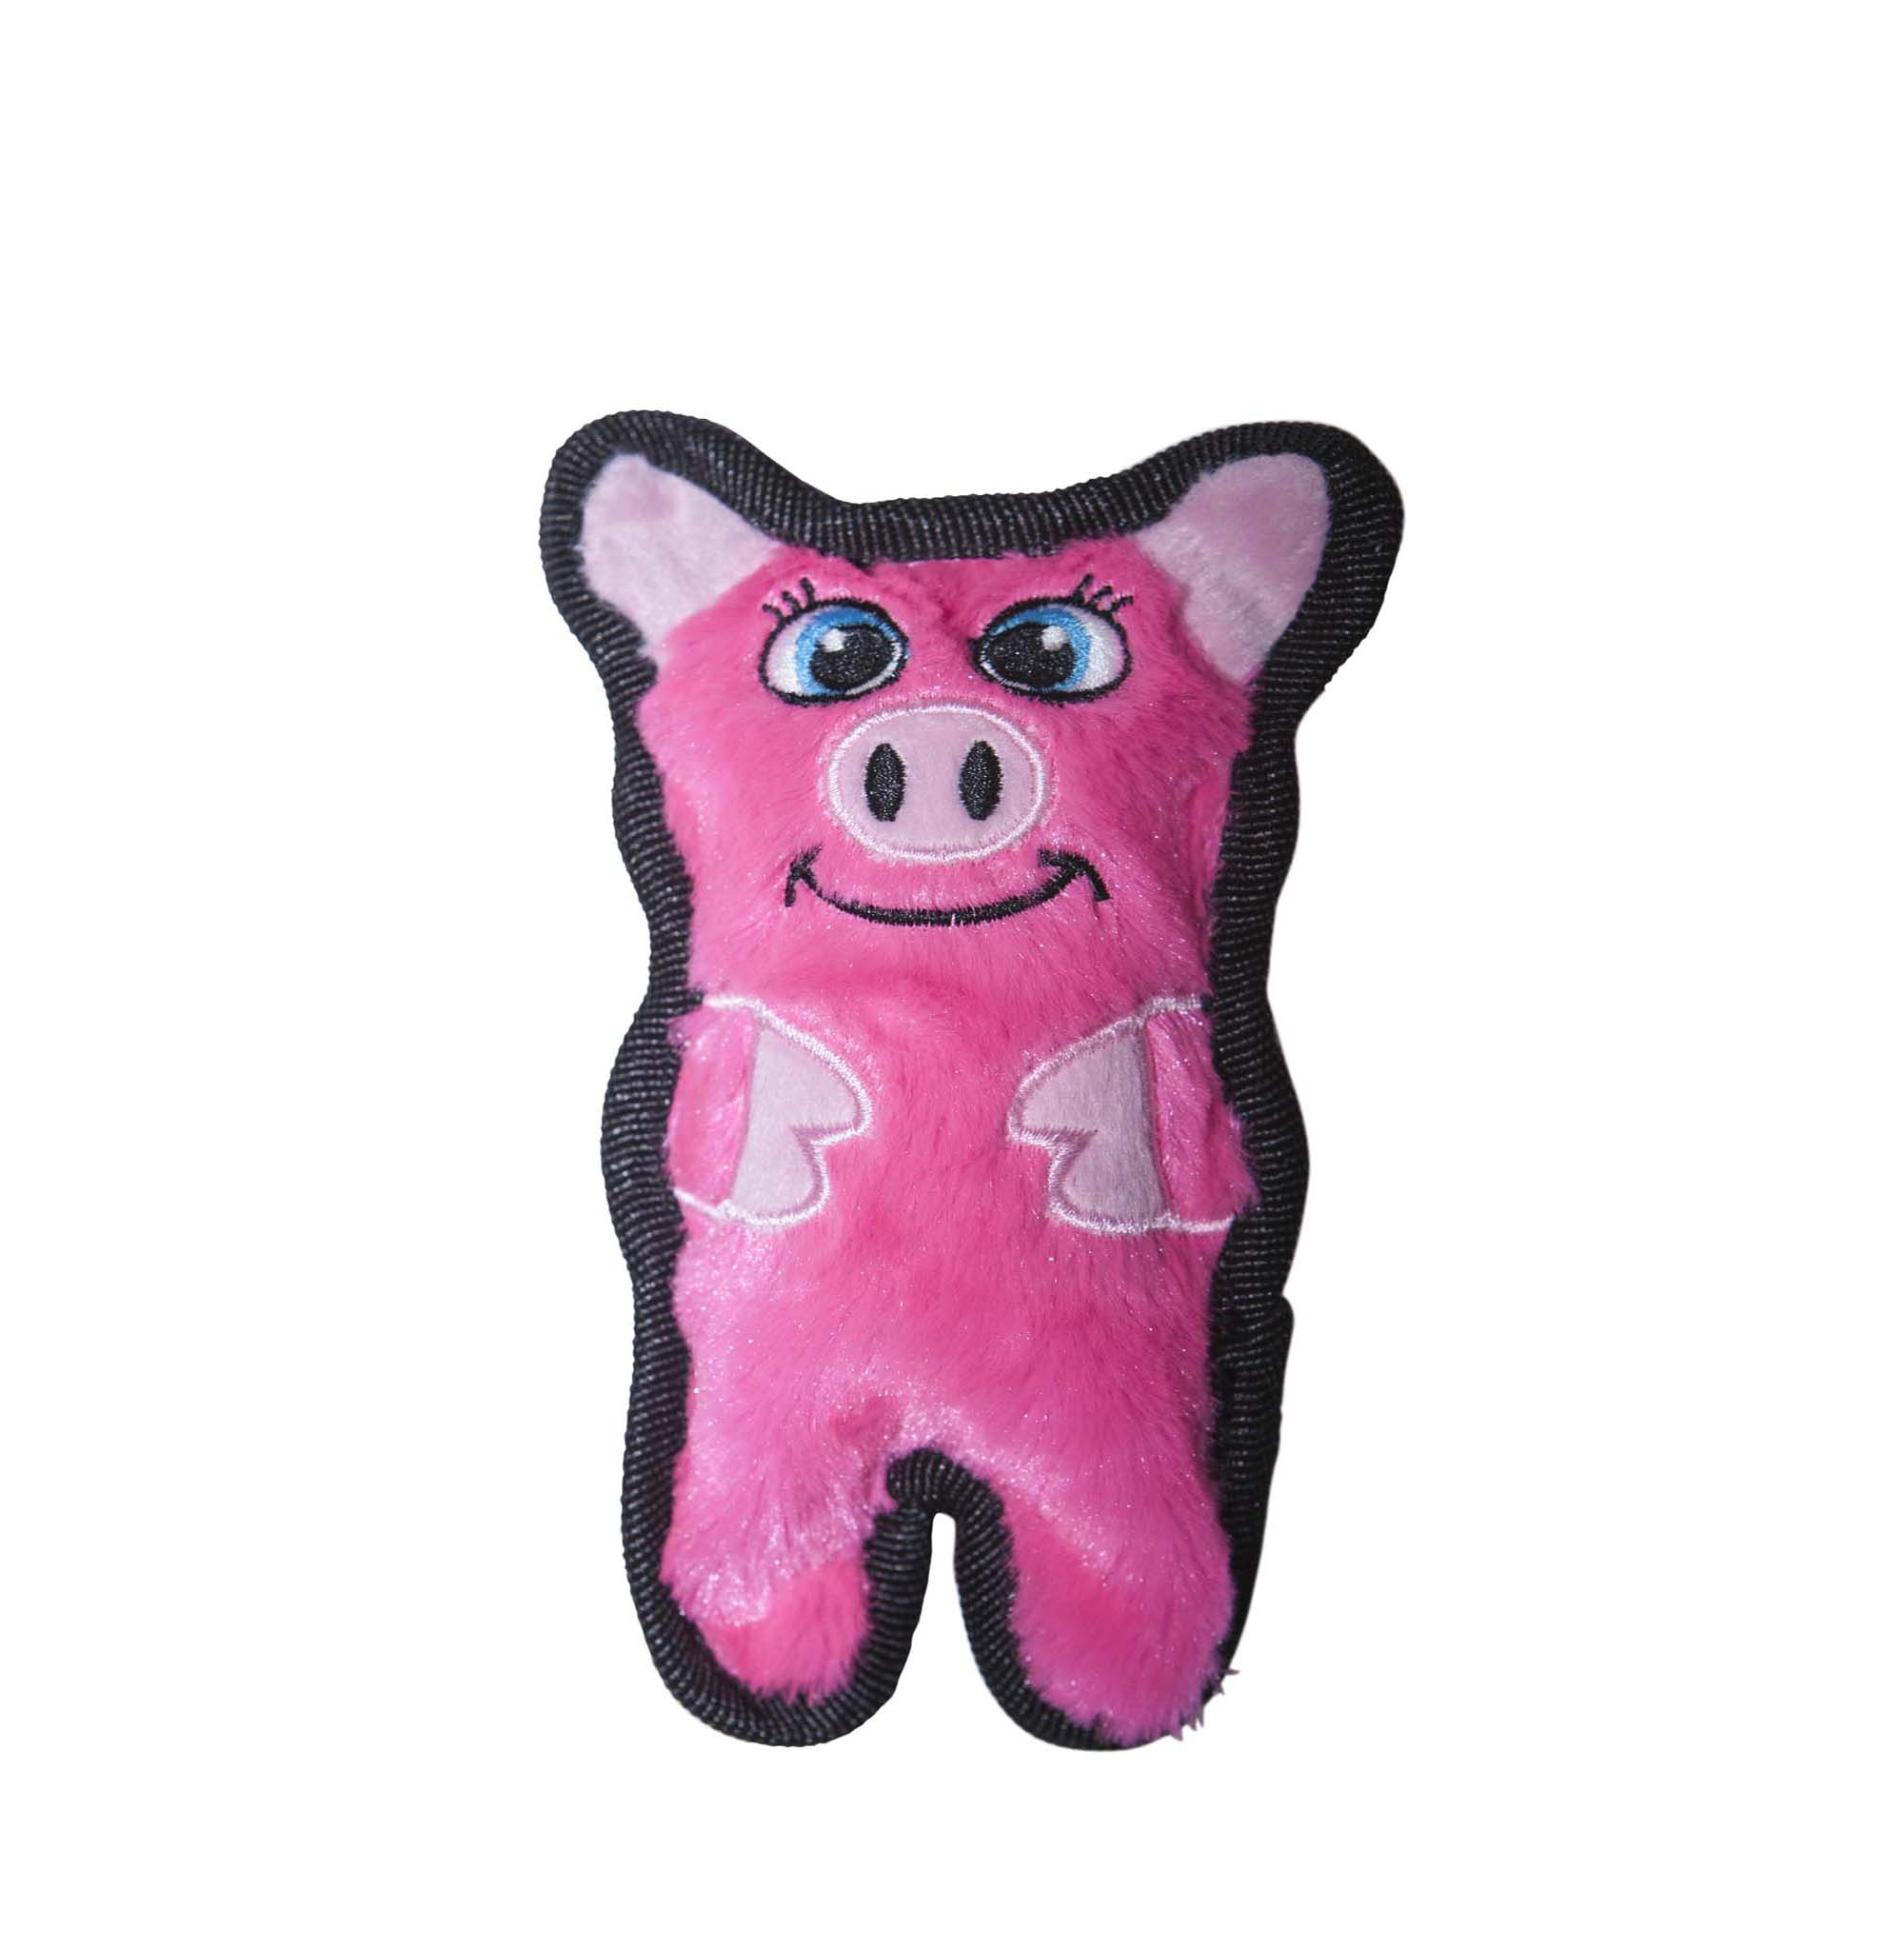 Invincibles Minis Stuffingless Durable Tough Plush Dog Squeaky Toy By Outward Hound 1 Squeaker Pig